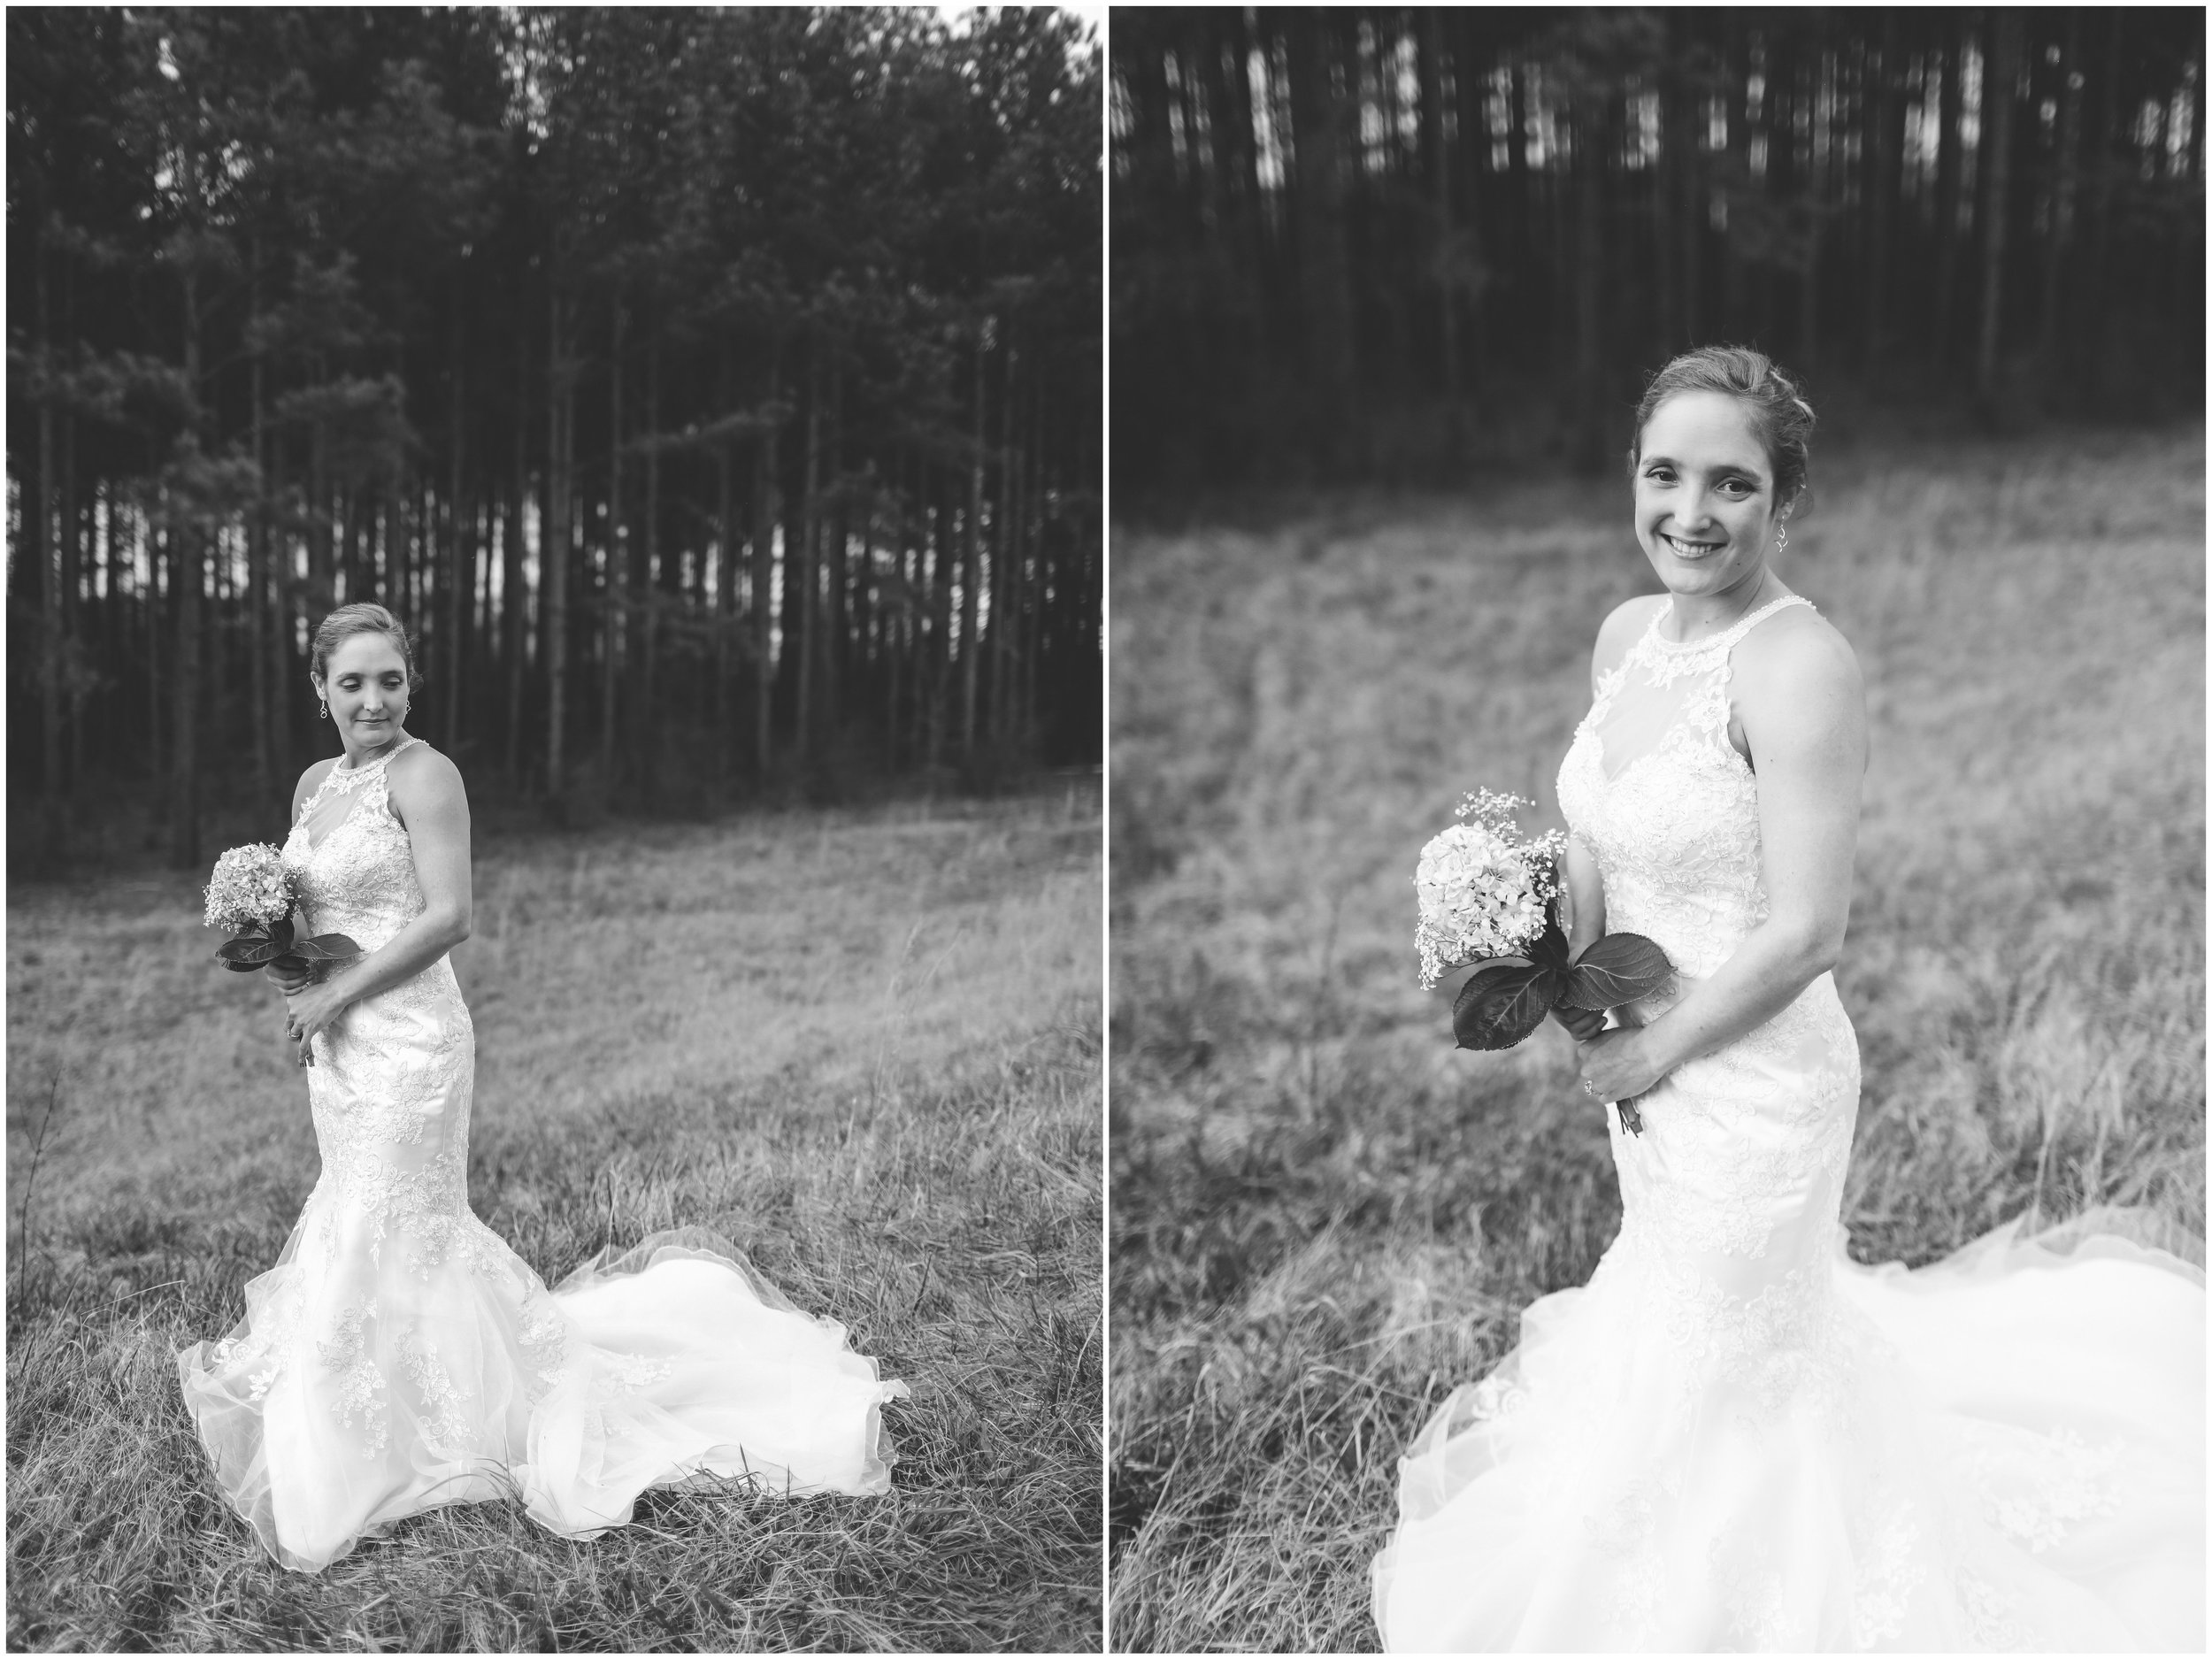 Bridal Shoot in a field